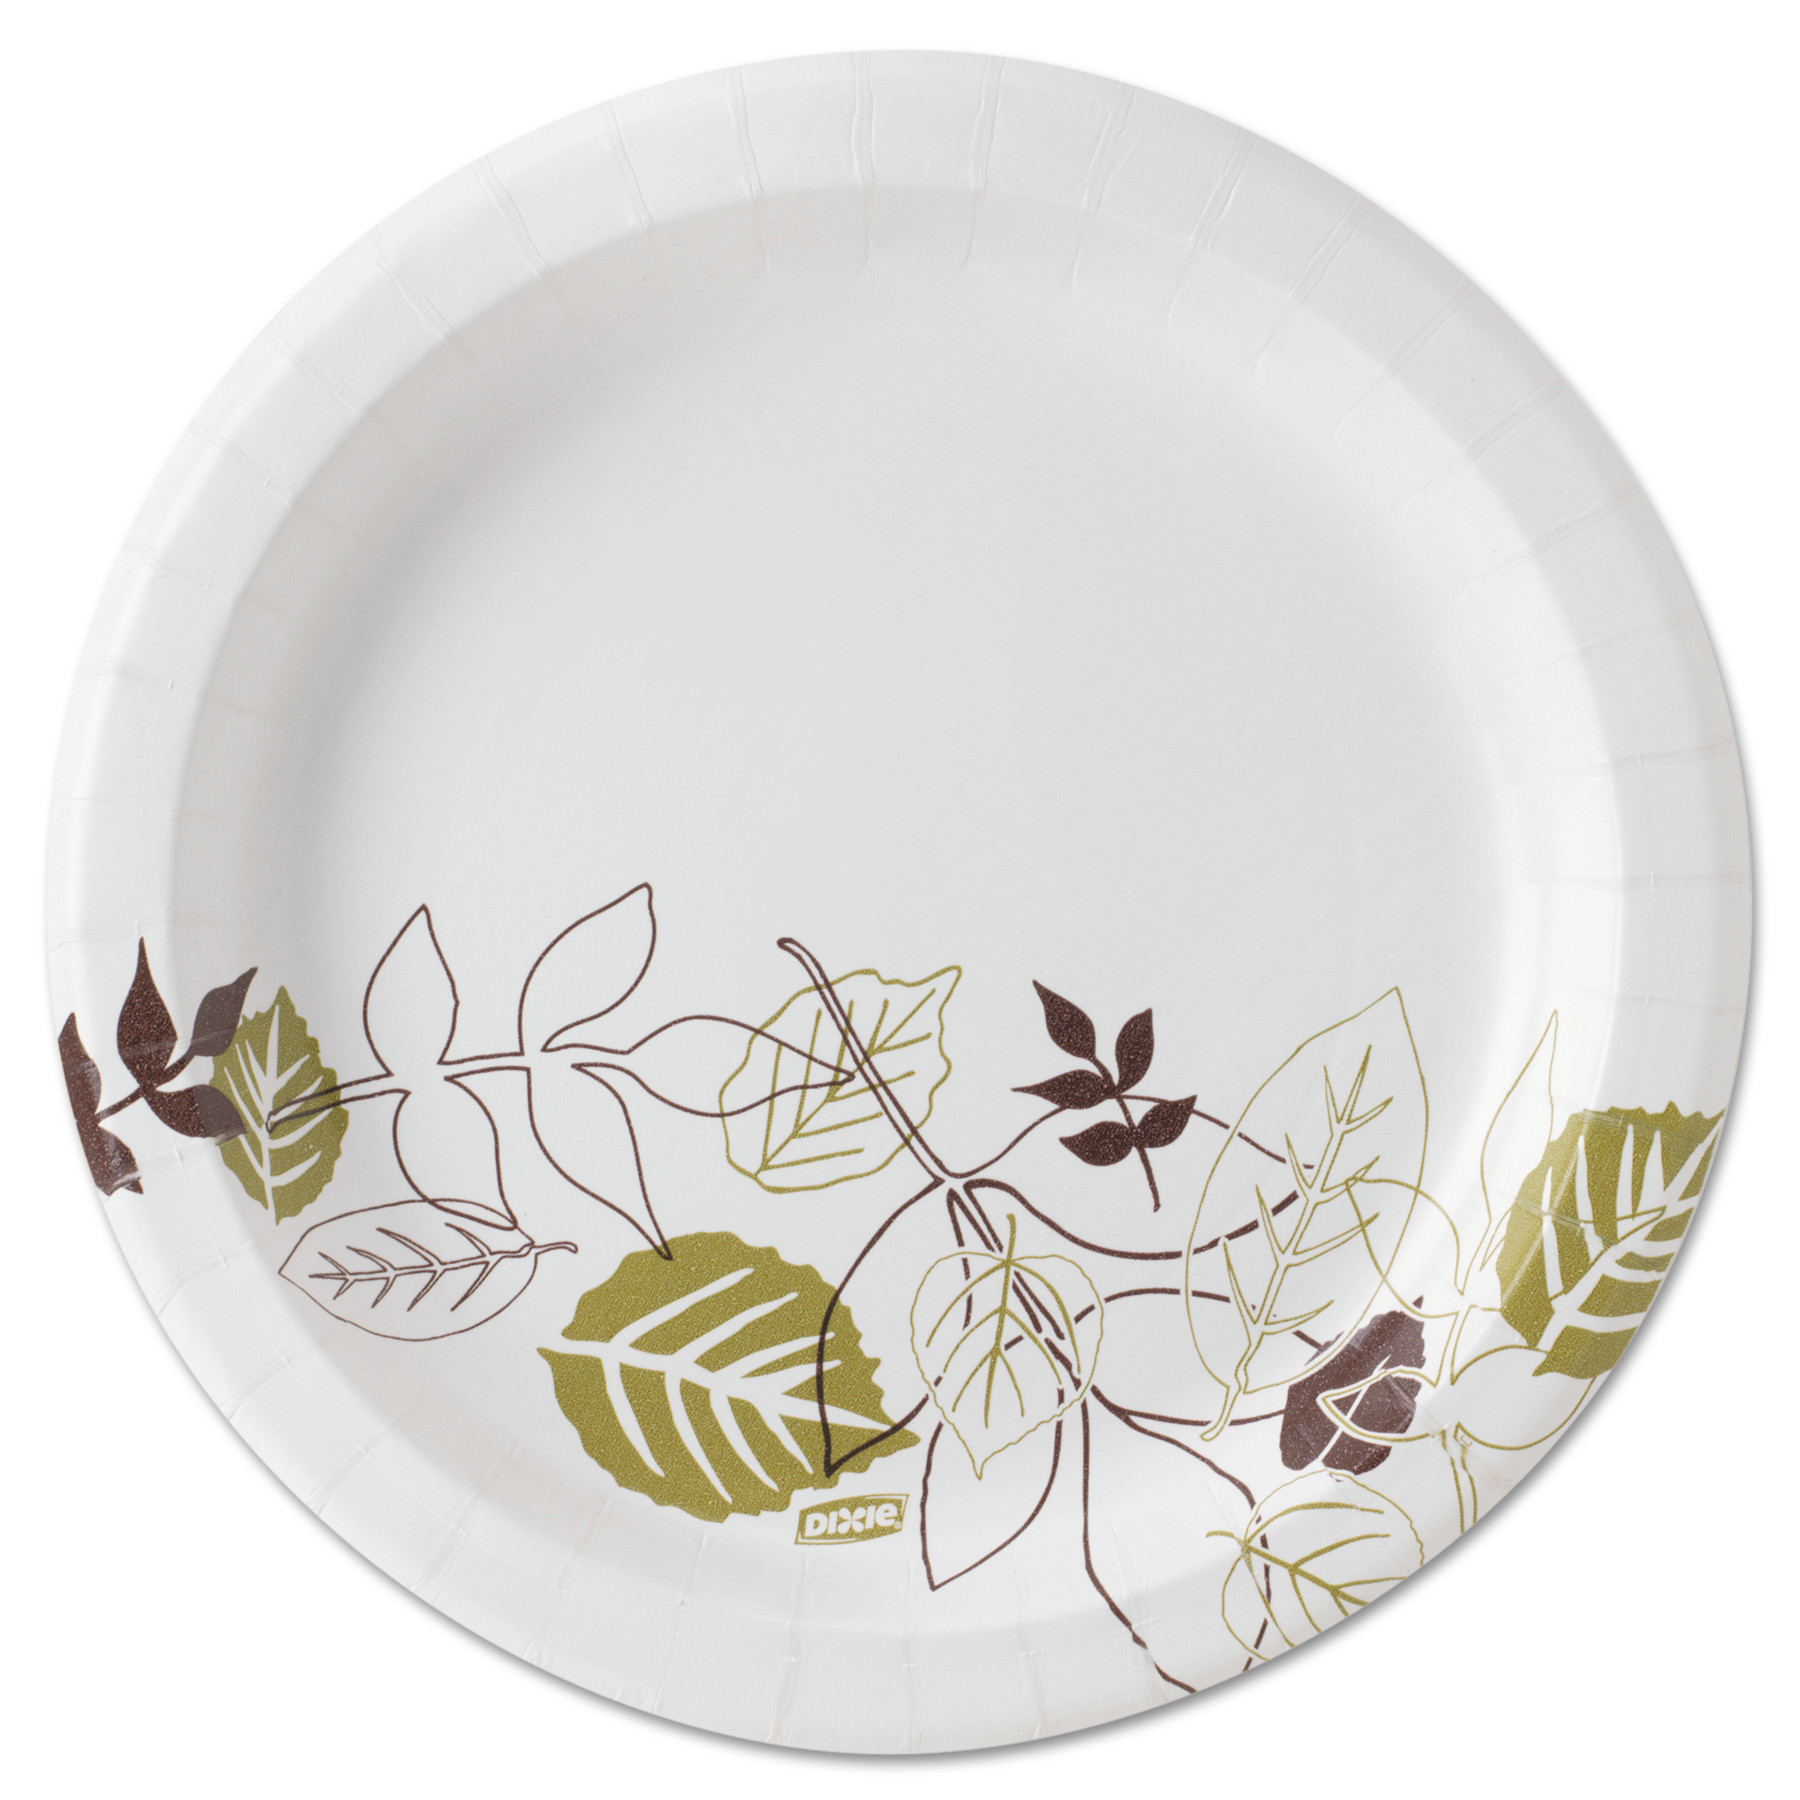 "Dixie Pathways Soak-Proof Shield Mediumweight Paper Plates, 8 1/2"", Grn/Burg, 1000/Ct -DXEUX9PATH"